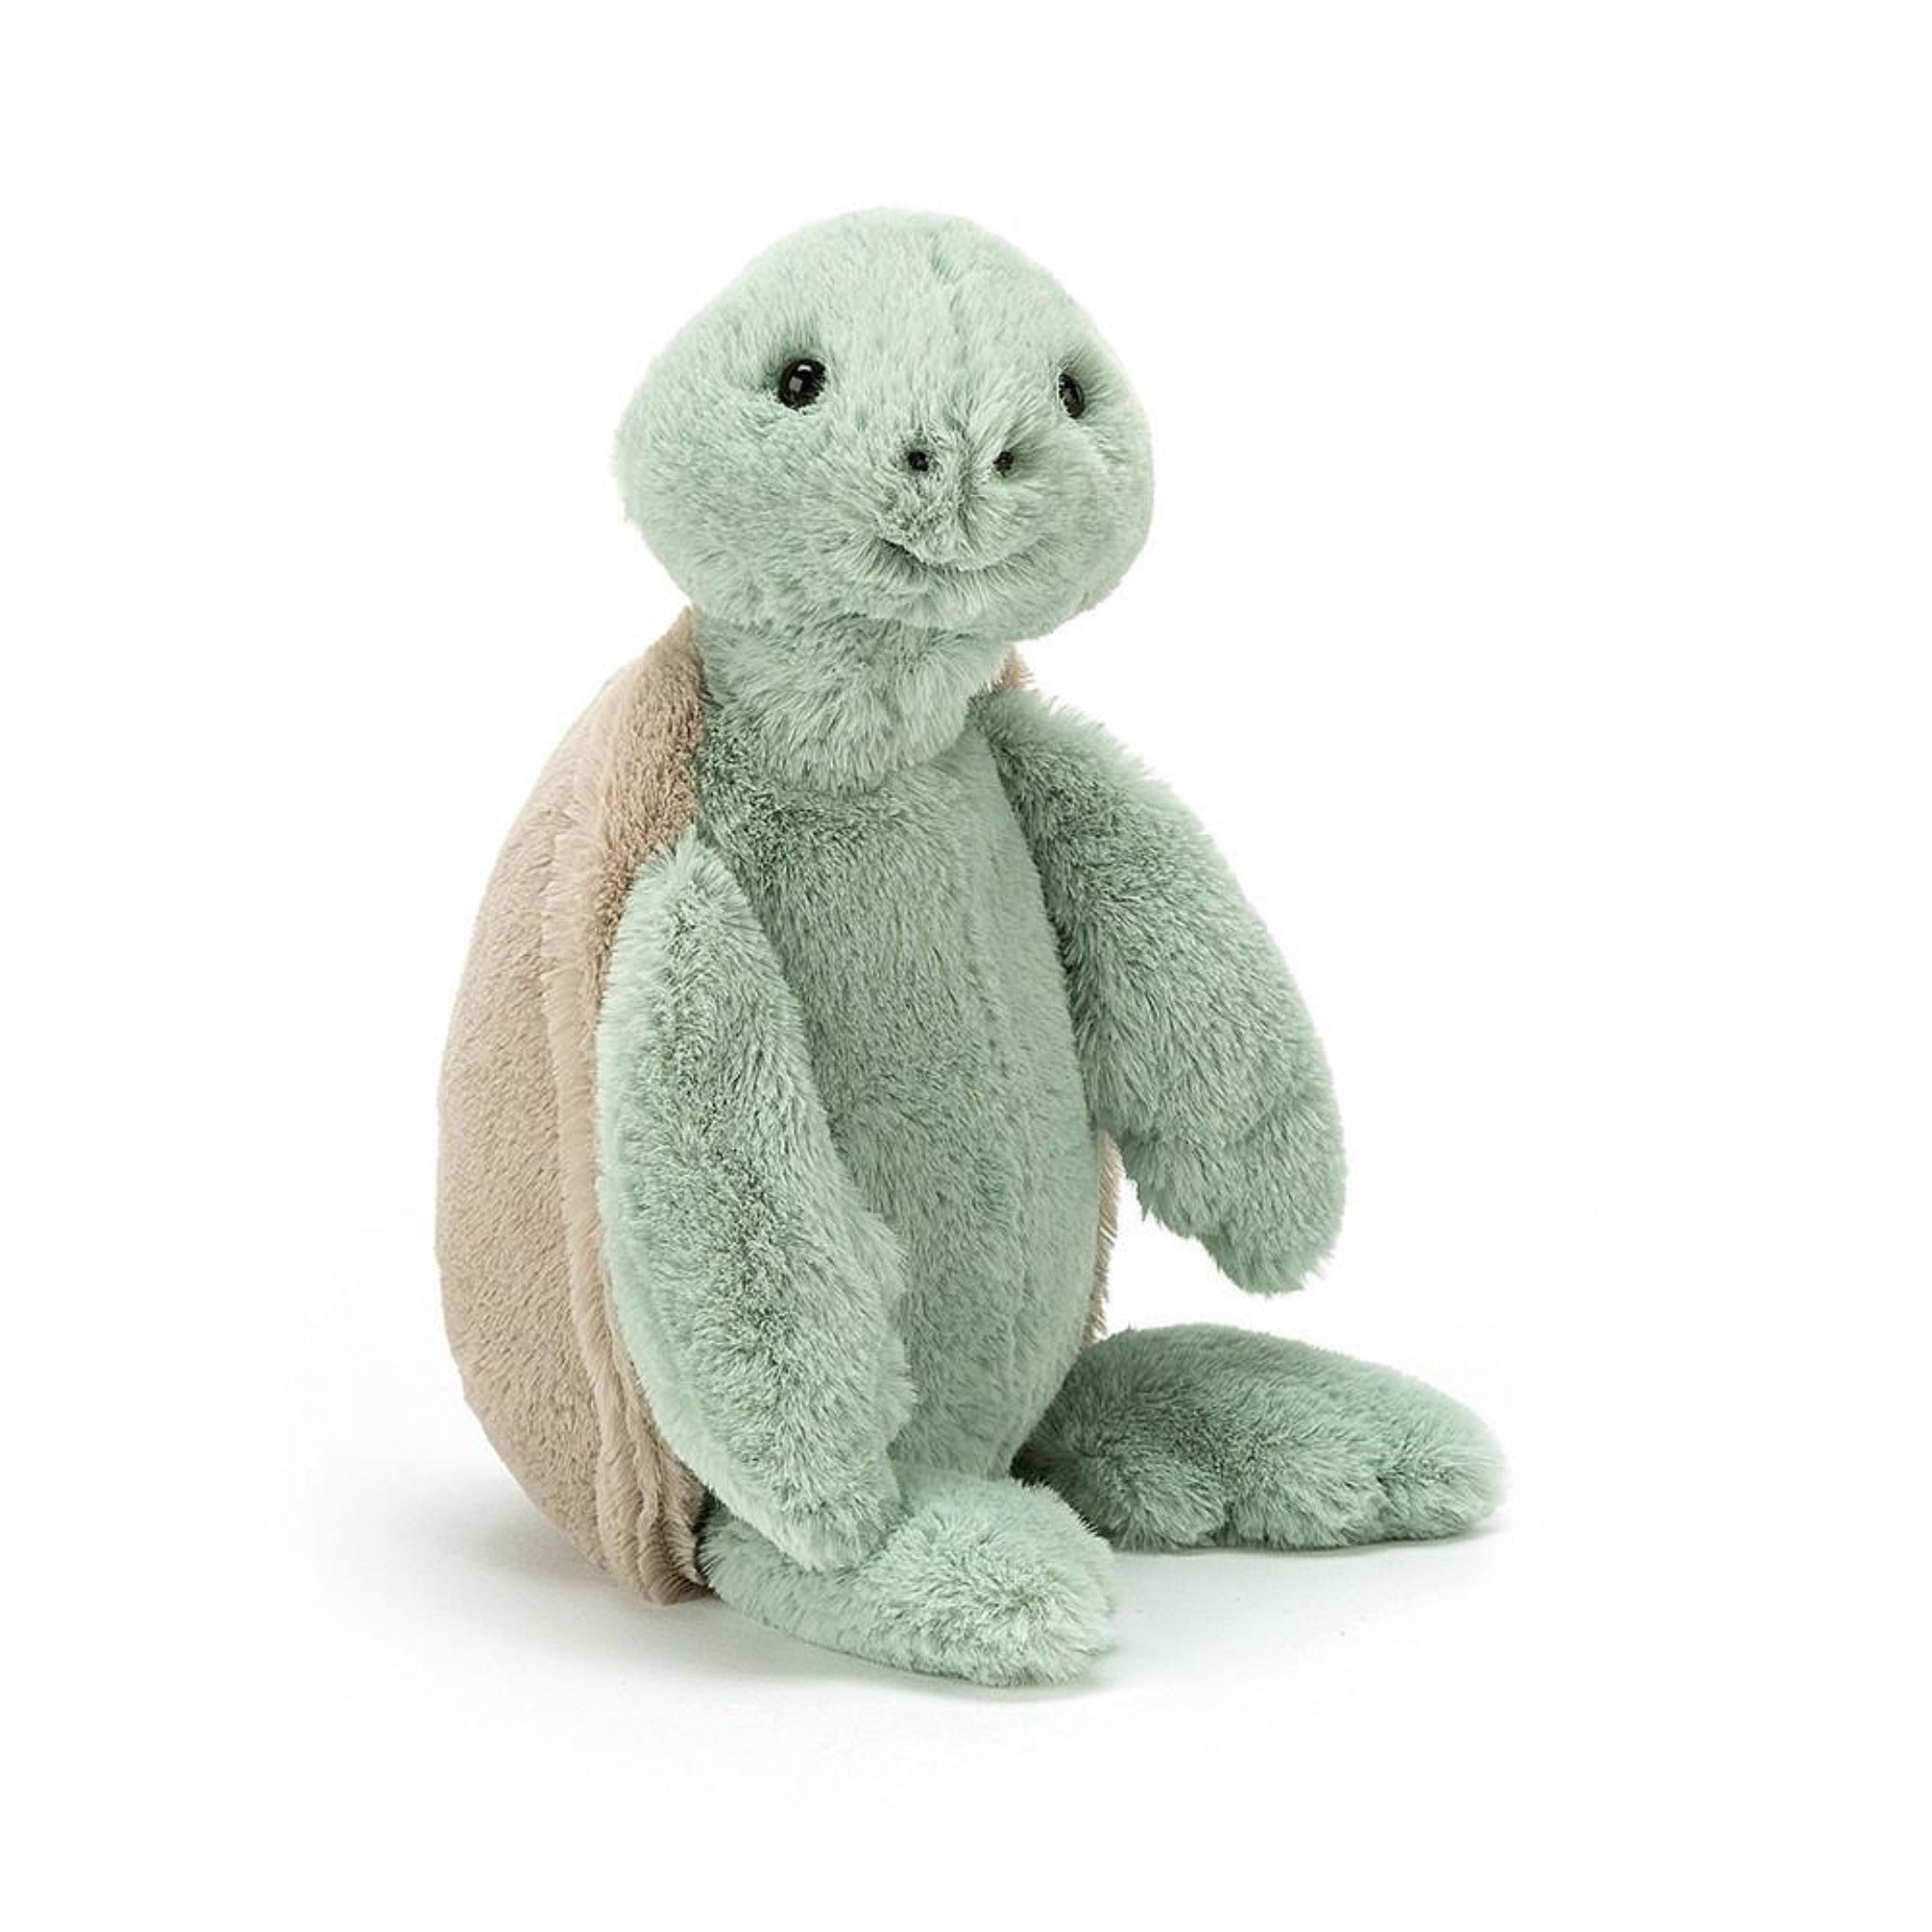 JellyCat plush small turtle toy